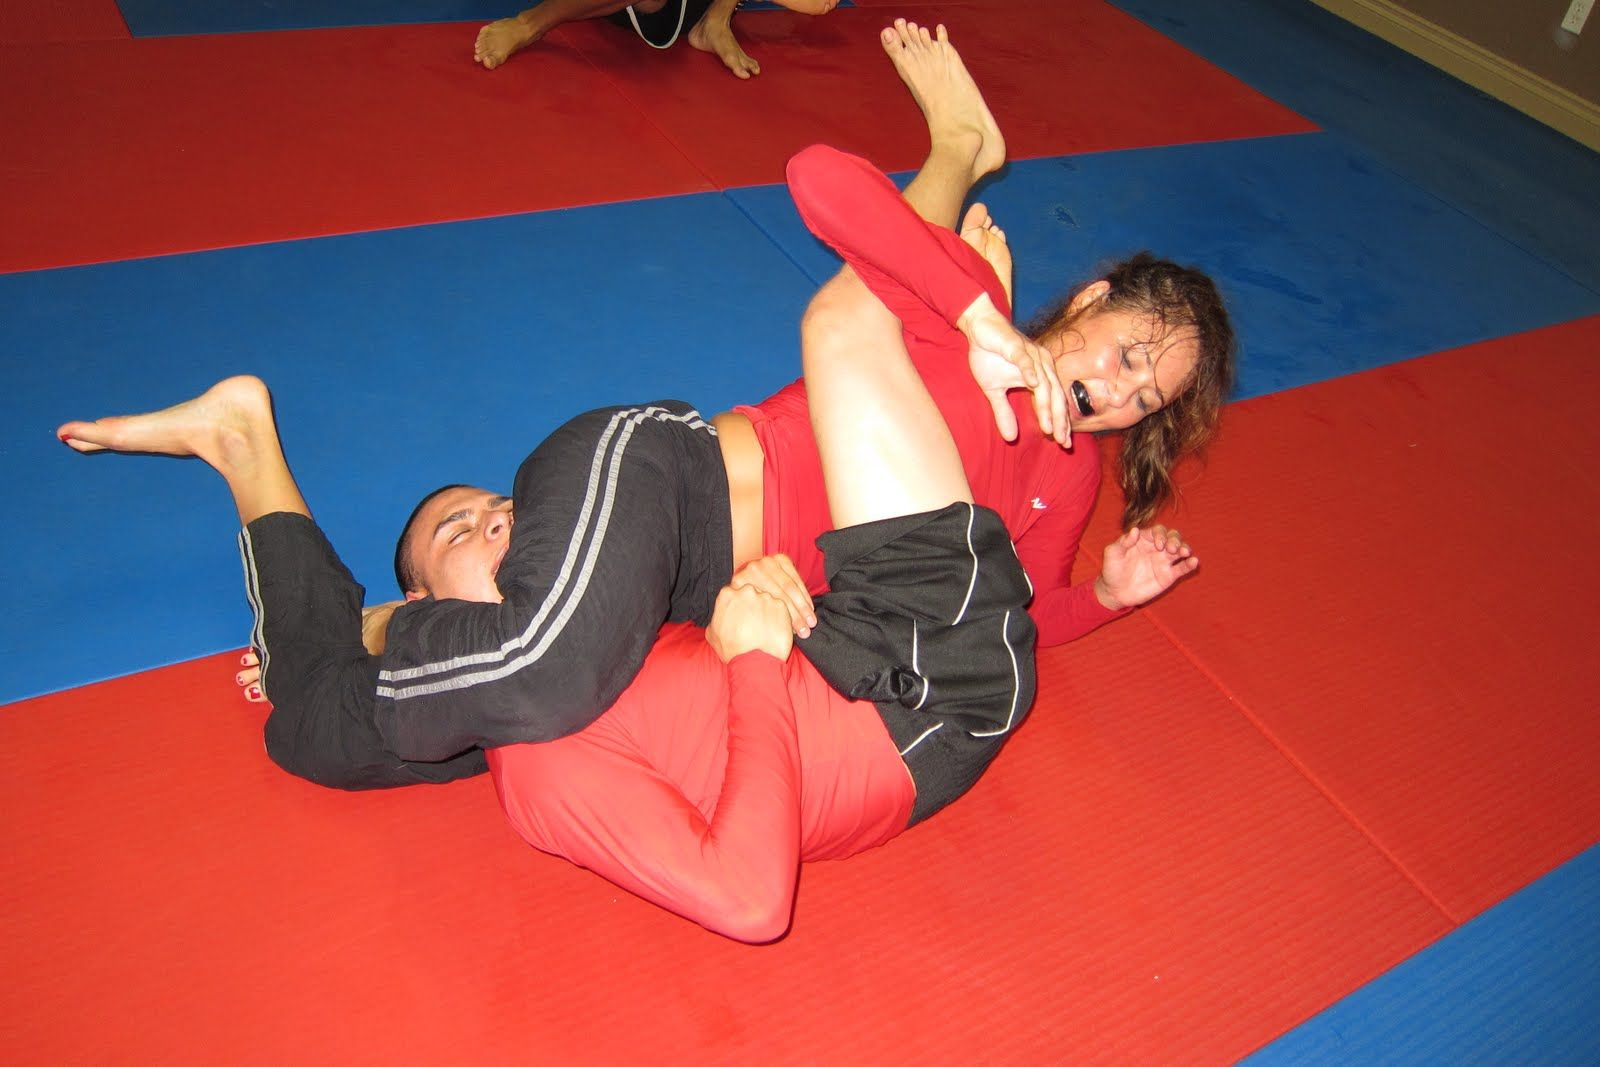 Women Grappling Mma - Bing Images  Athletics  Mixed -1565